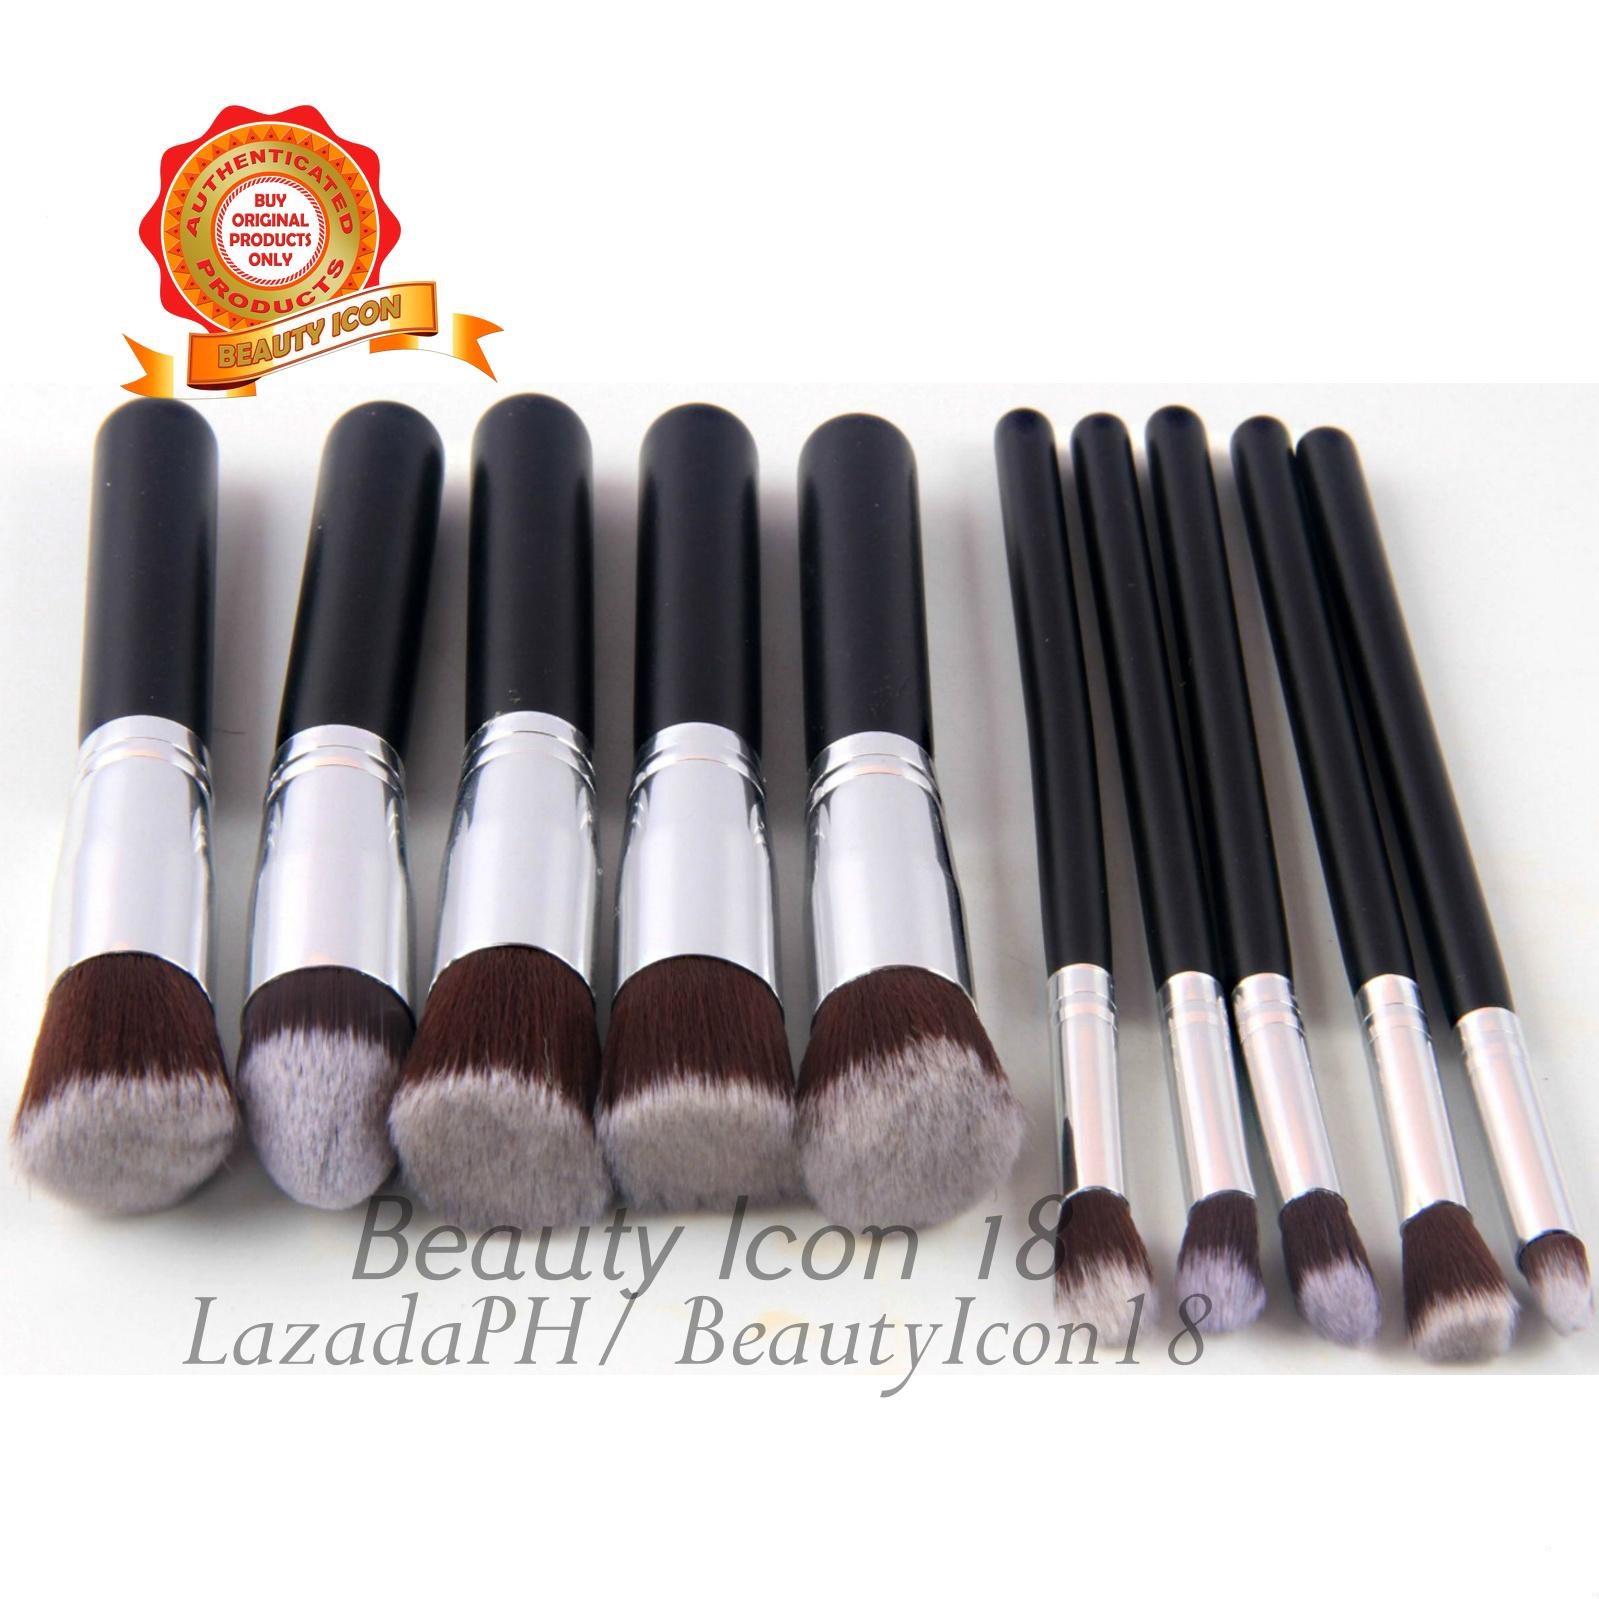 953fd6e4de5 Makeup Brush brands - Applicator on sale, prices, set & reviews in ...